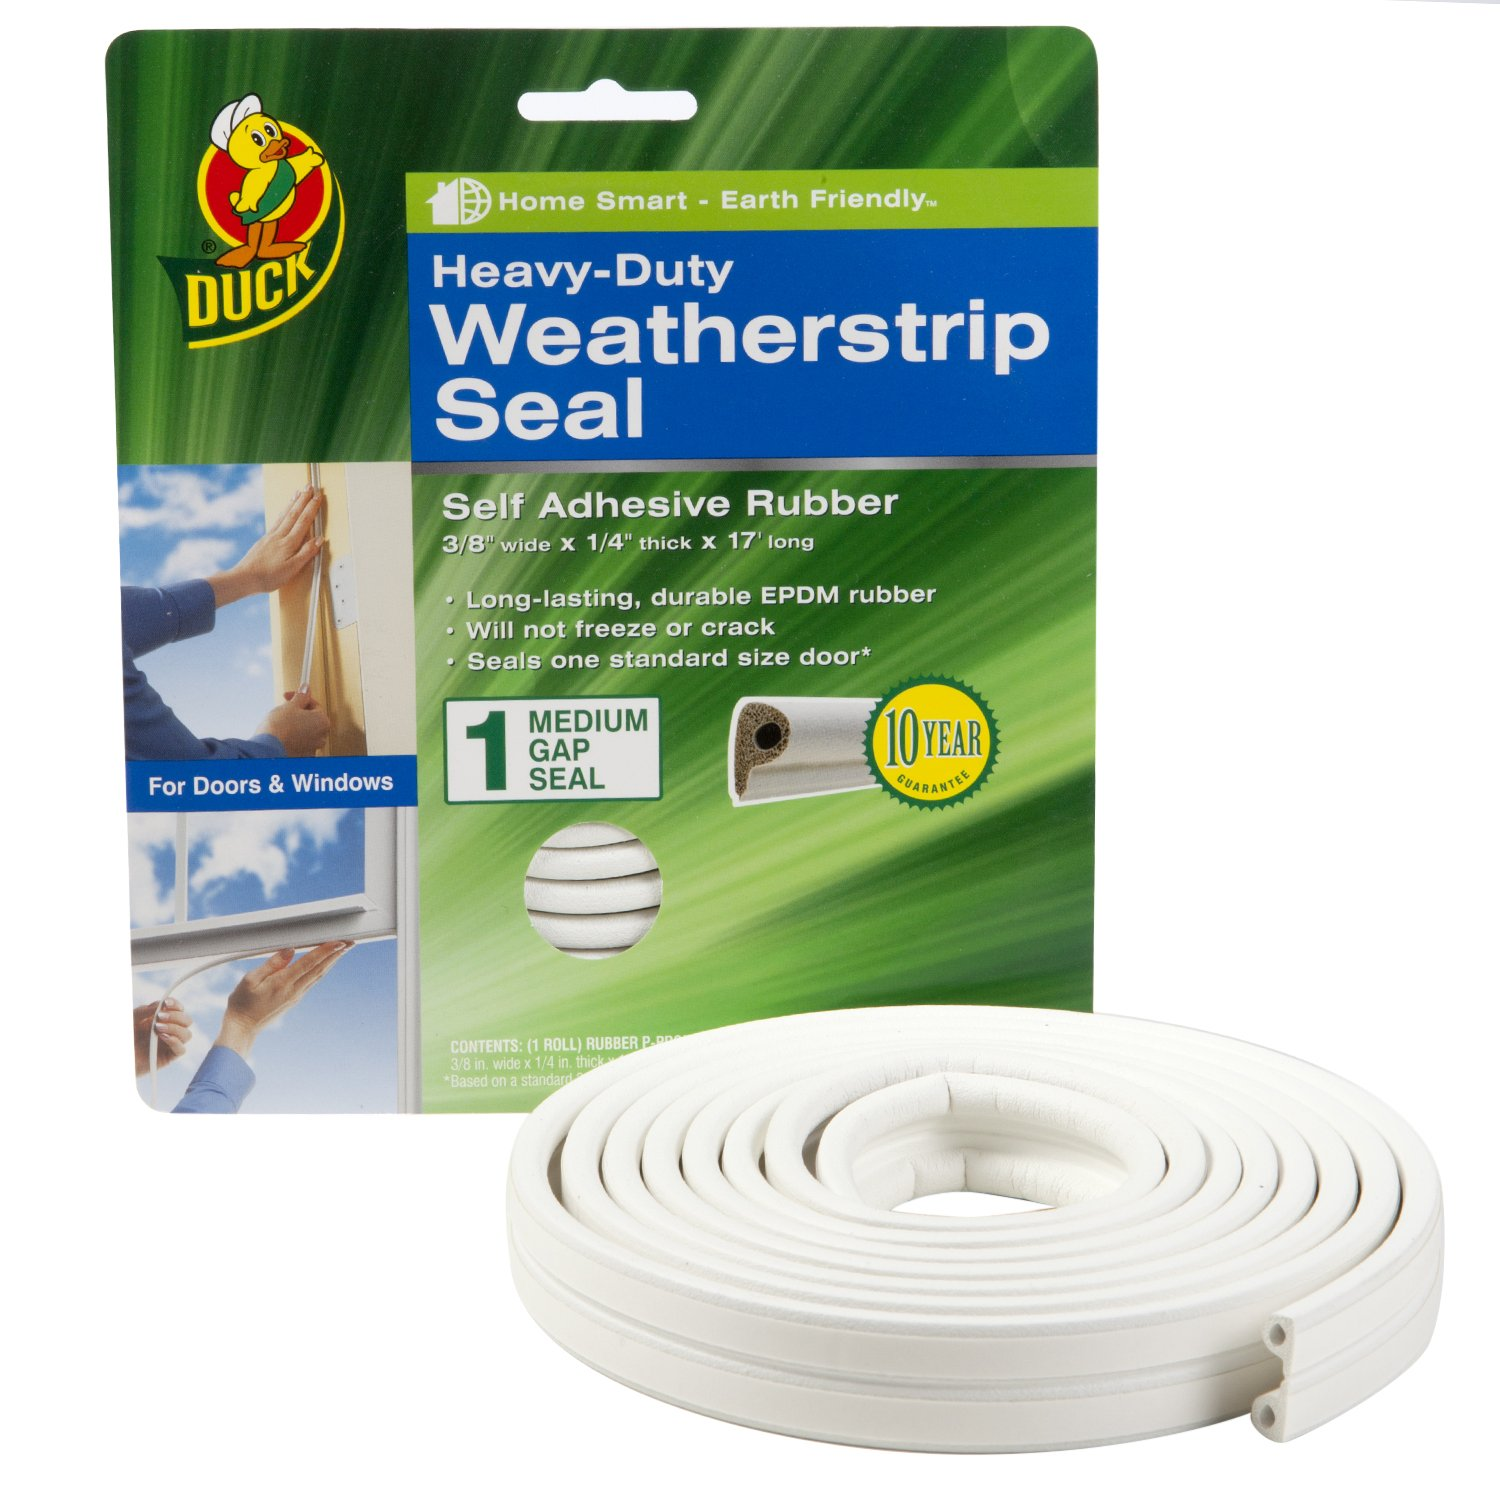 White 2 Seals 282434 Duck Brand Heavy-Duty Self Adhesive Weatherstrip Seal for Large Gap 3//8-Inch x 1//4-Inch x 17-Feet